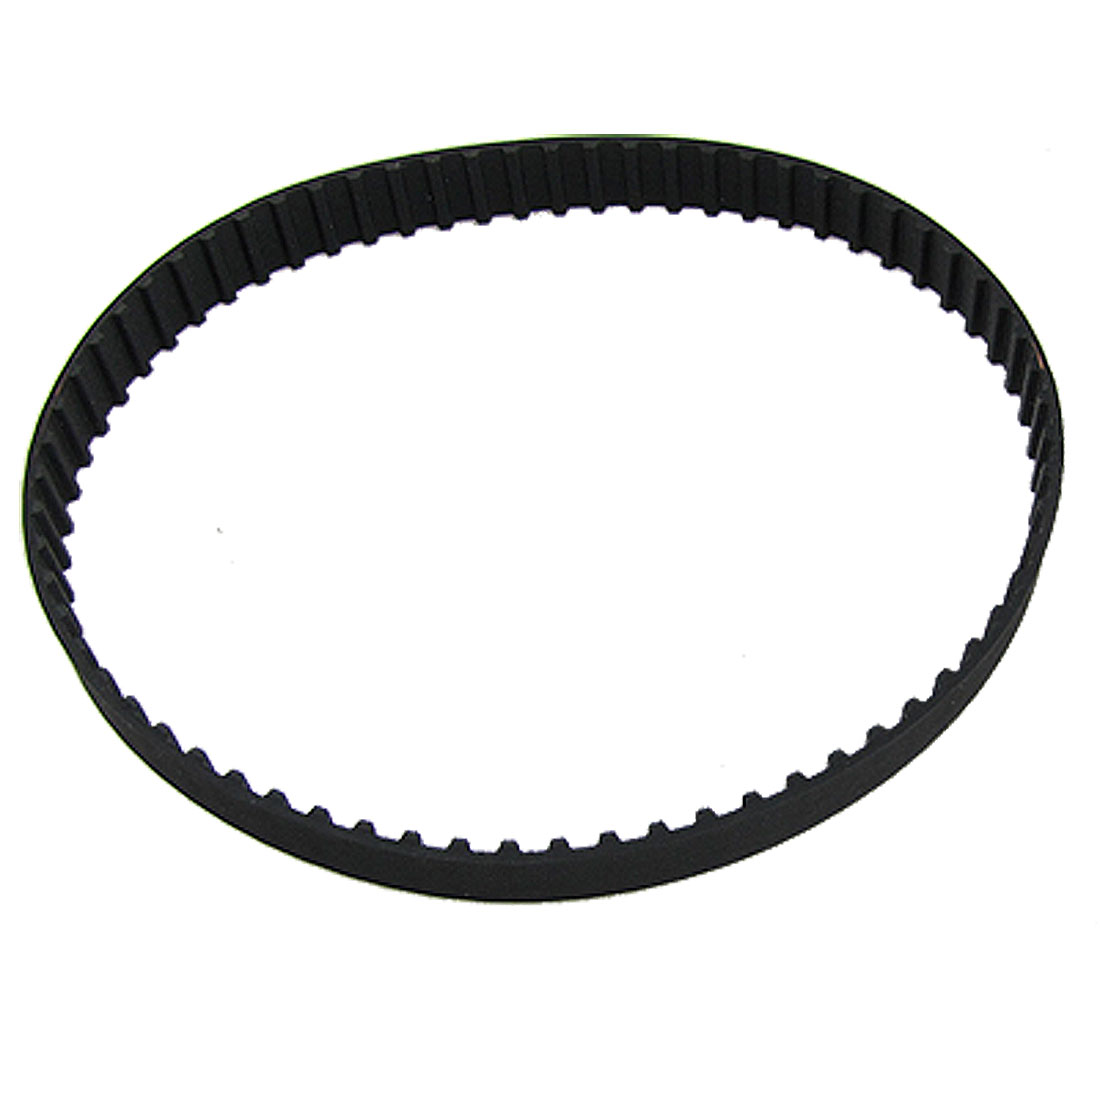 "134XL 1/5"" Pitch 10mm Width 67 Teeth Black Single Sided Timing Belt"